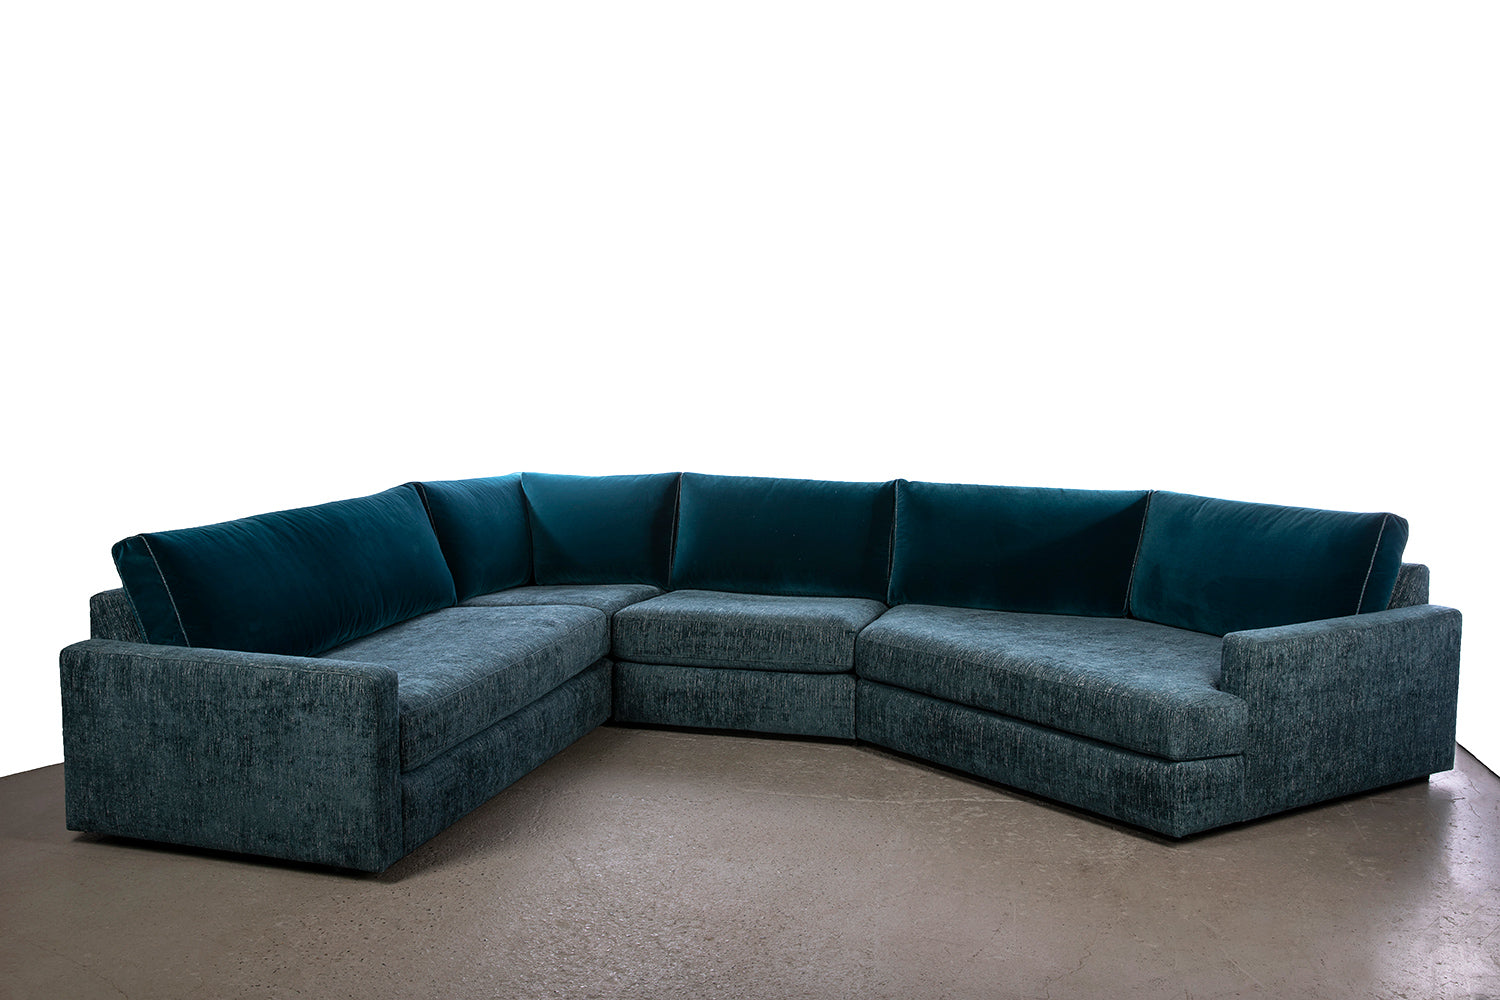 Coasty Slim - Cove Sectional : medium LHF